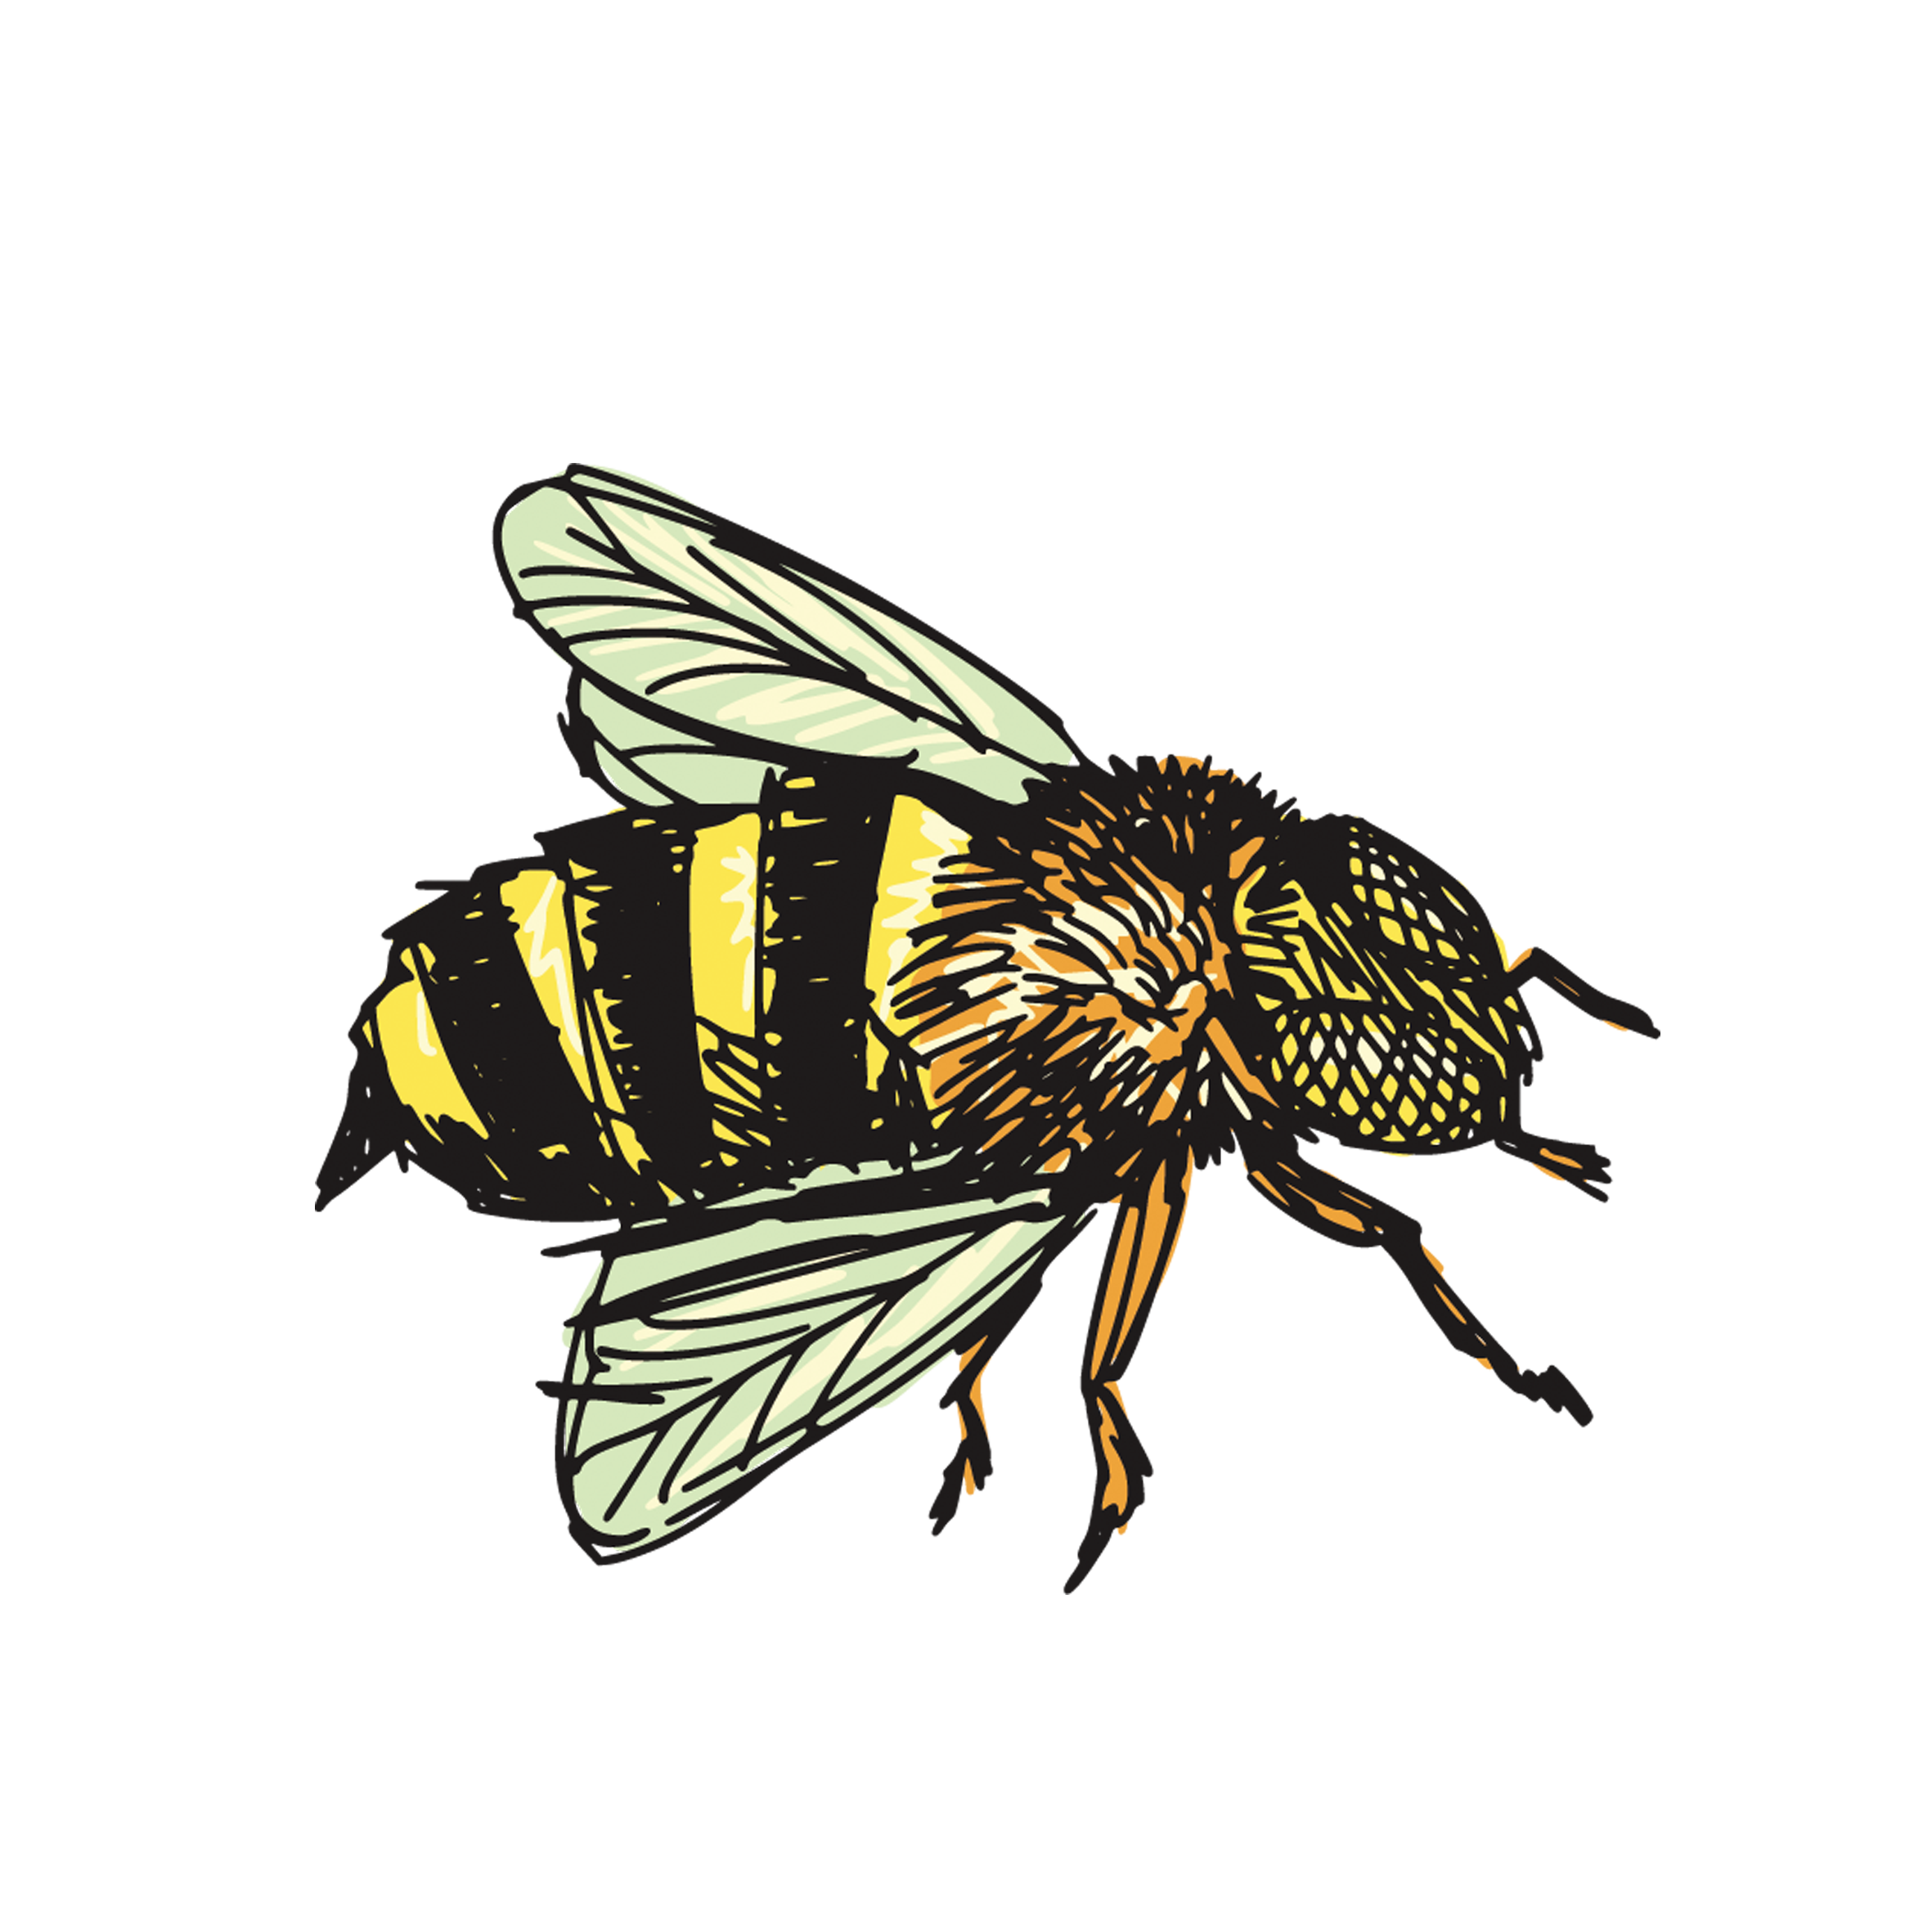 Honey bee drawing png. Insect clip art transprent